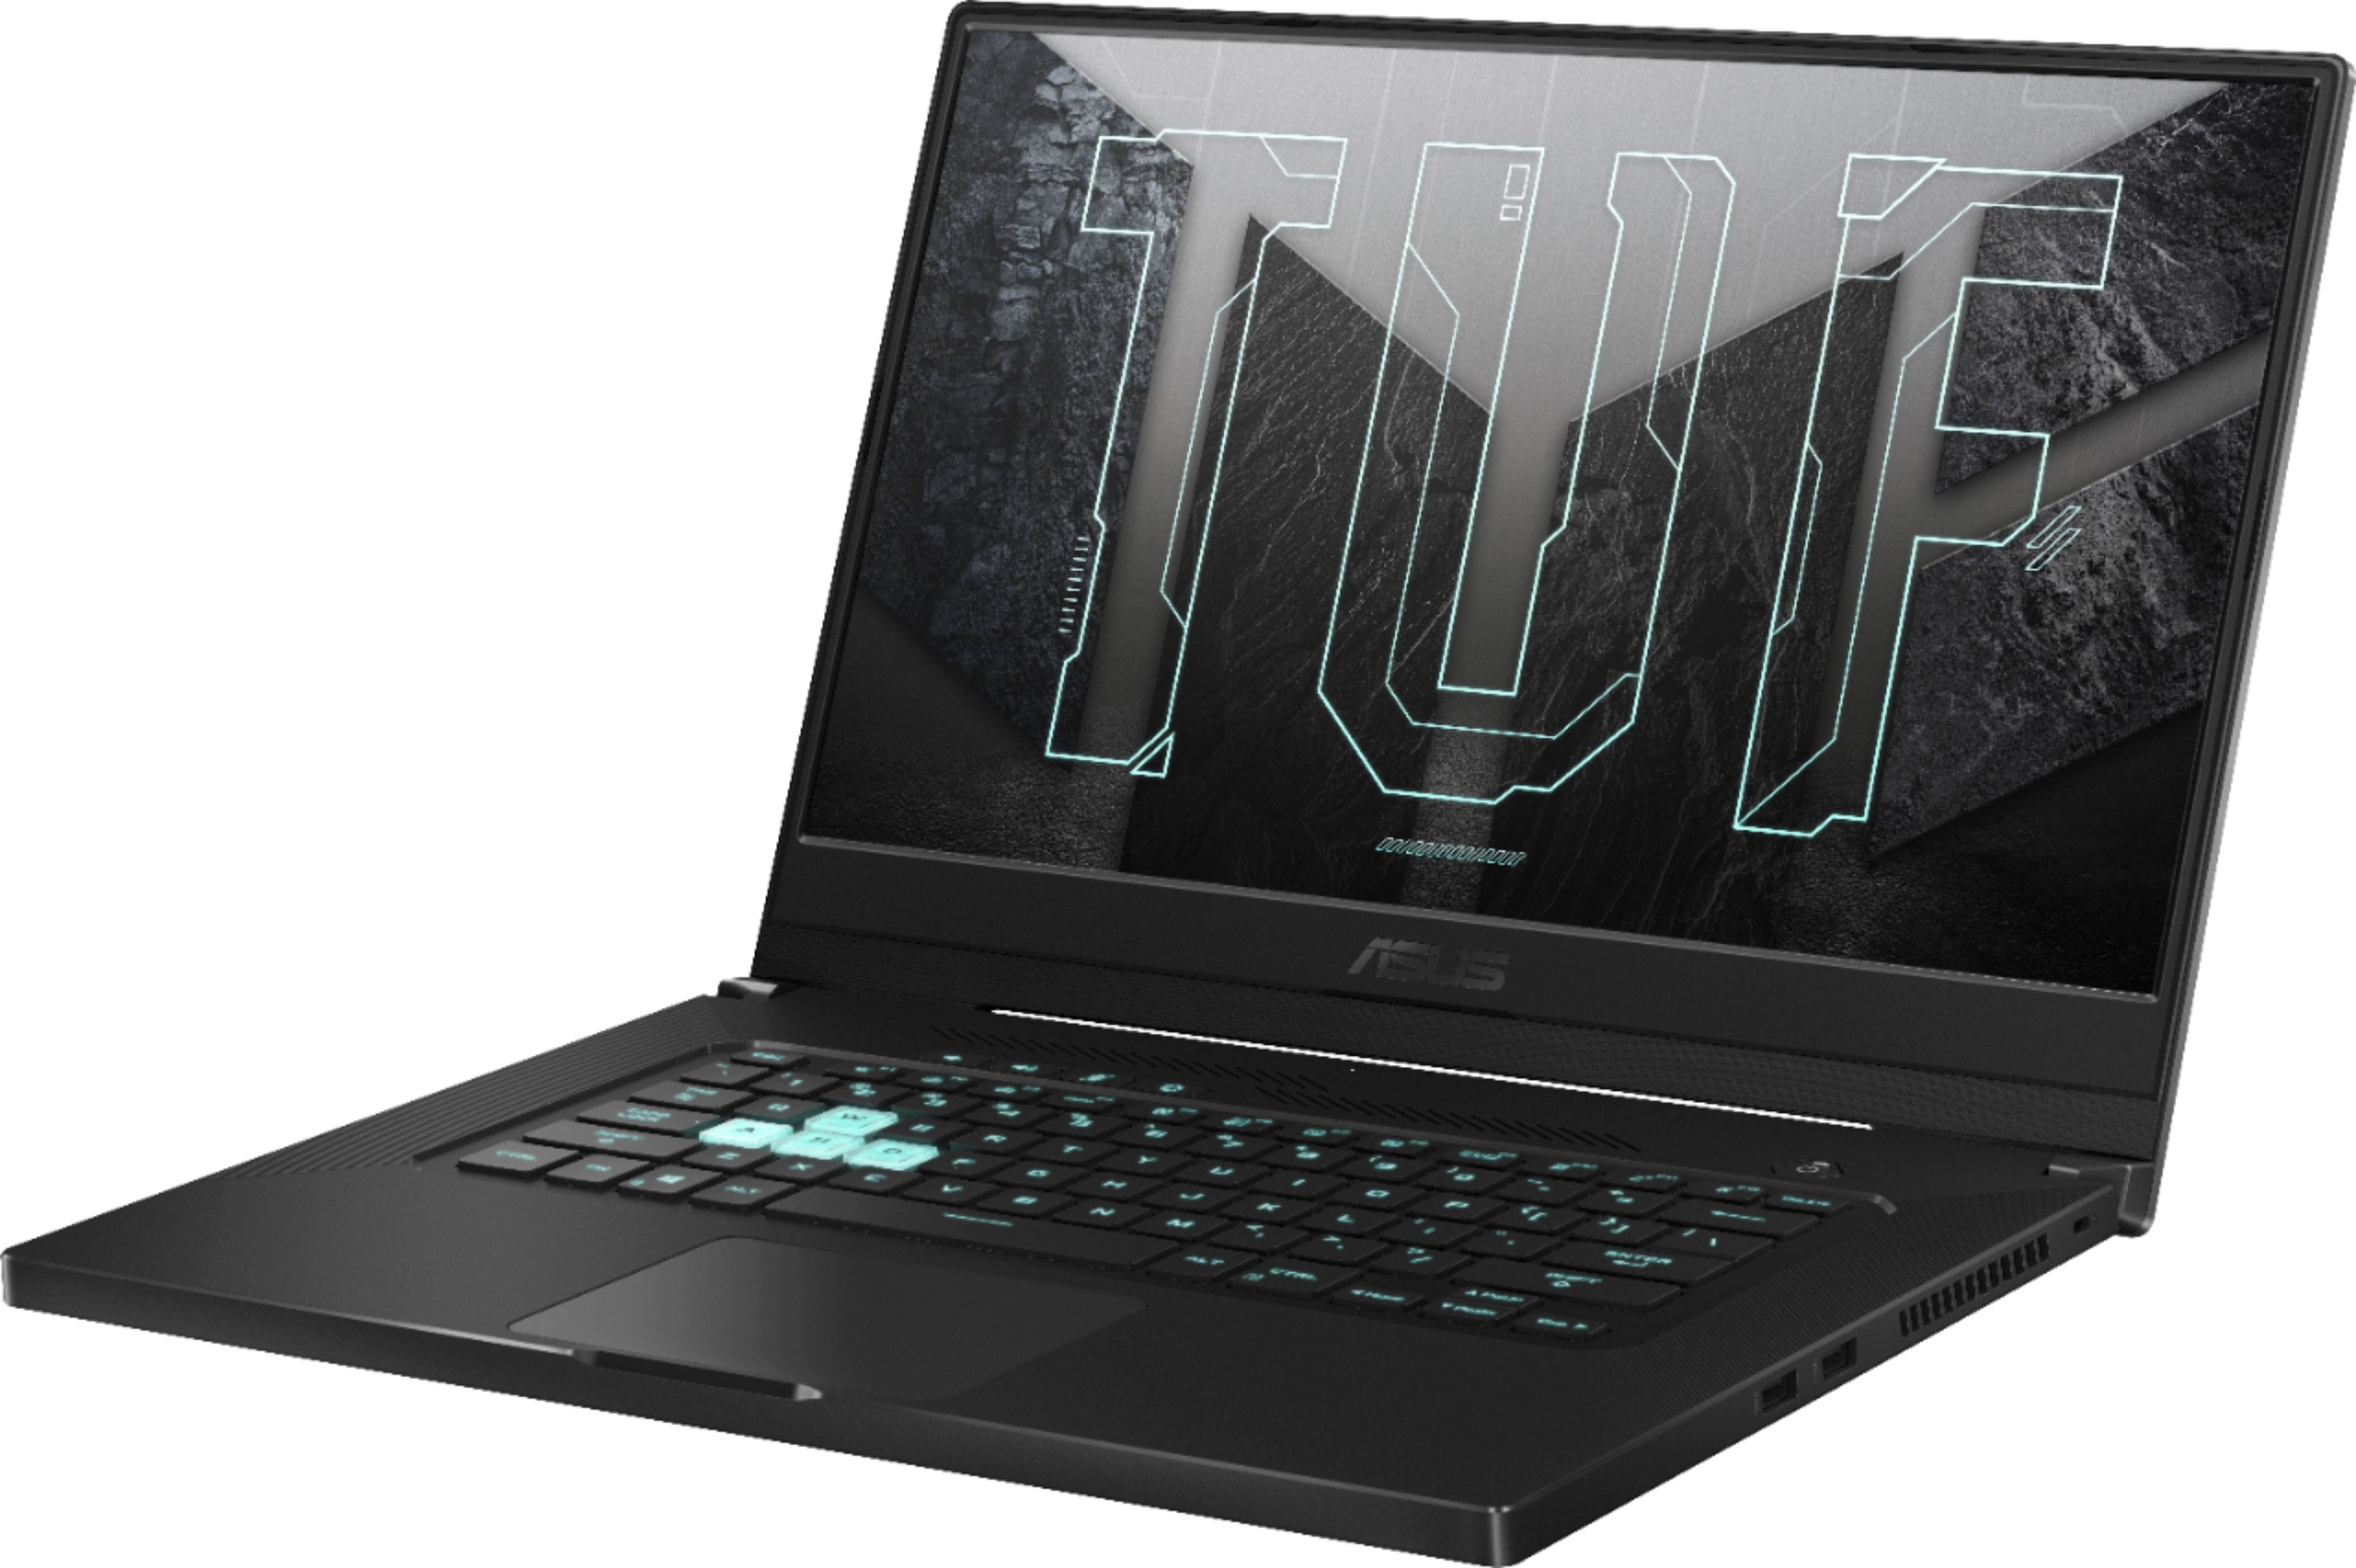 "BestBuy - ASUS - TUF DASH 15.6"" Gaming Laptop - Intel 11th Gen i7 - 16GB Memory - GeForce RTX 3070 - 1TB M.2 PCIEG3 SSD - Eclipse Grey - Eclipse Grey $1449.99"